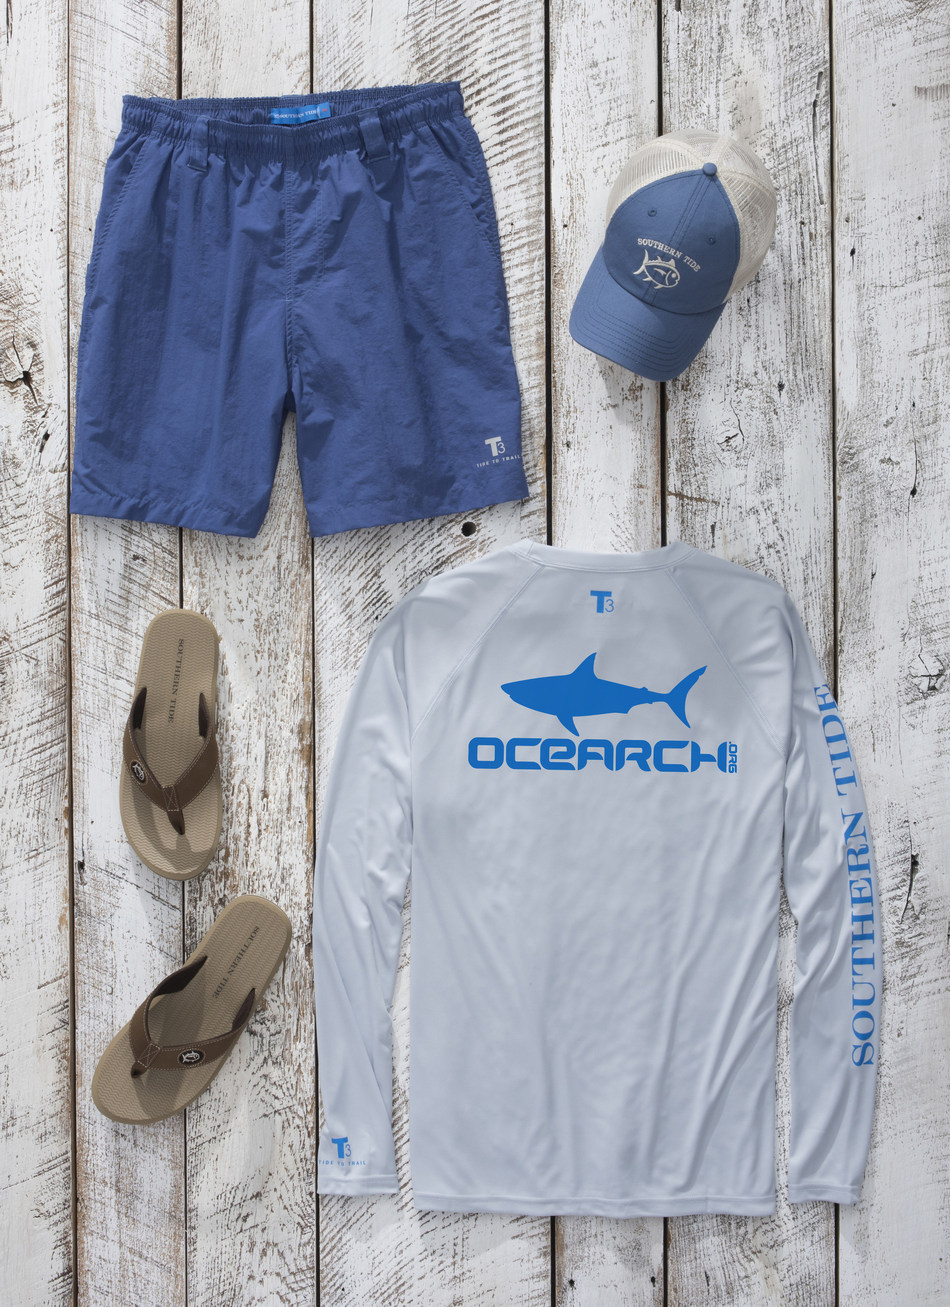 Southern Tide is outfitting the OCEARCH crew for their upcoming expeditions.